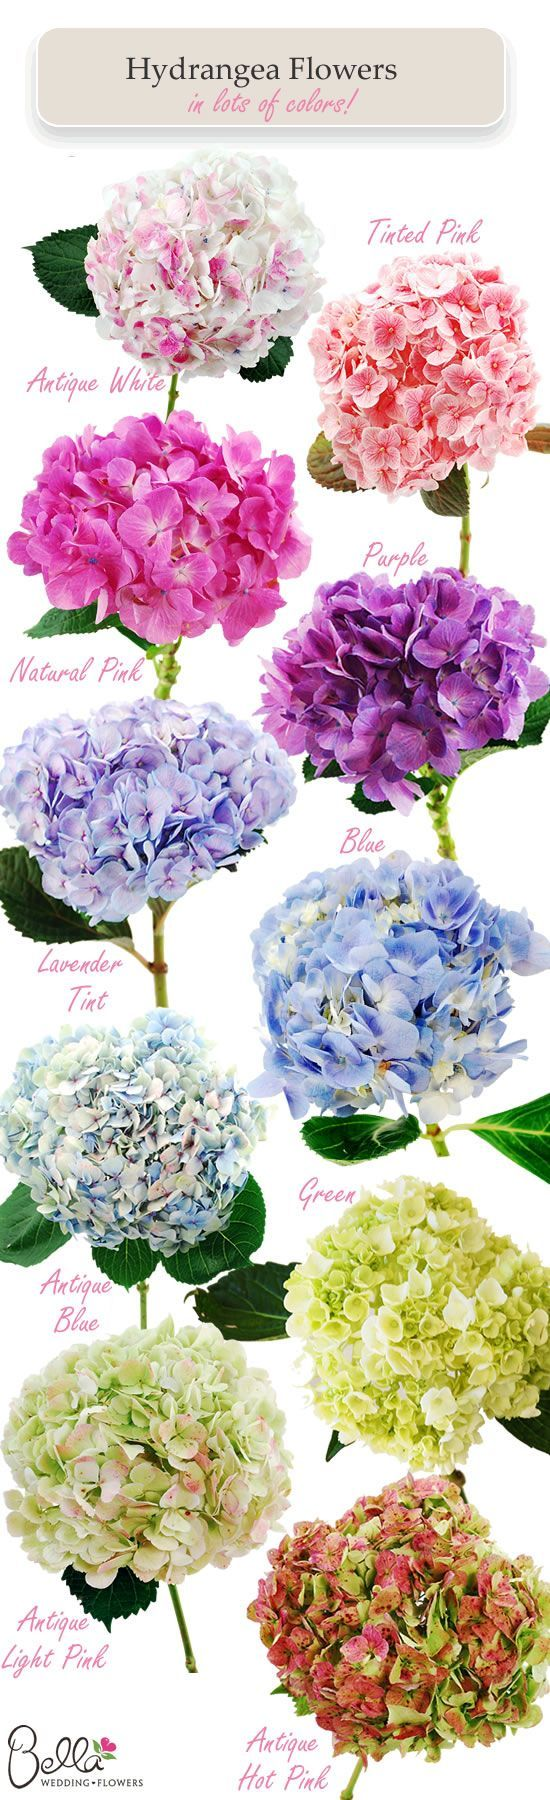 Garden flowers names - Find This Pin And More On Flower Names Gardens By Lmkeefer